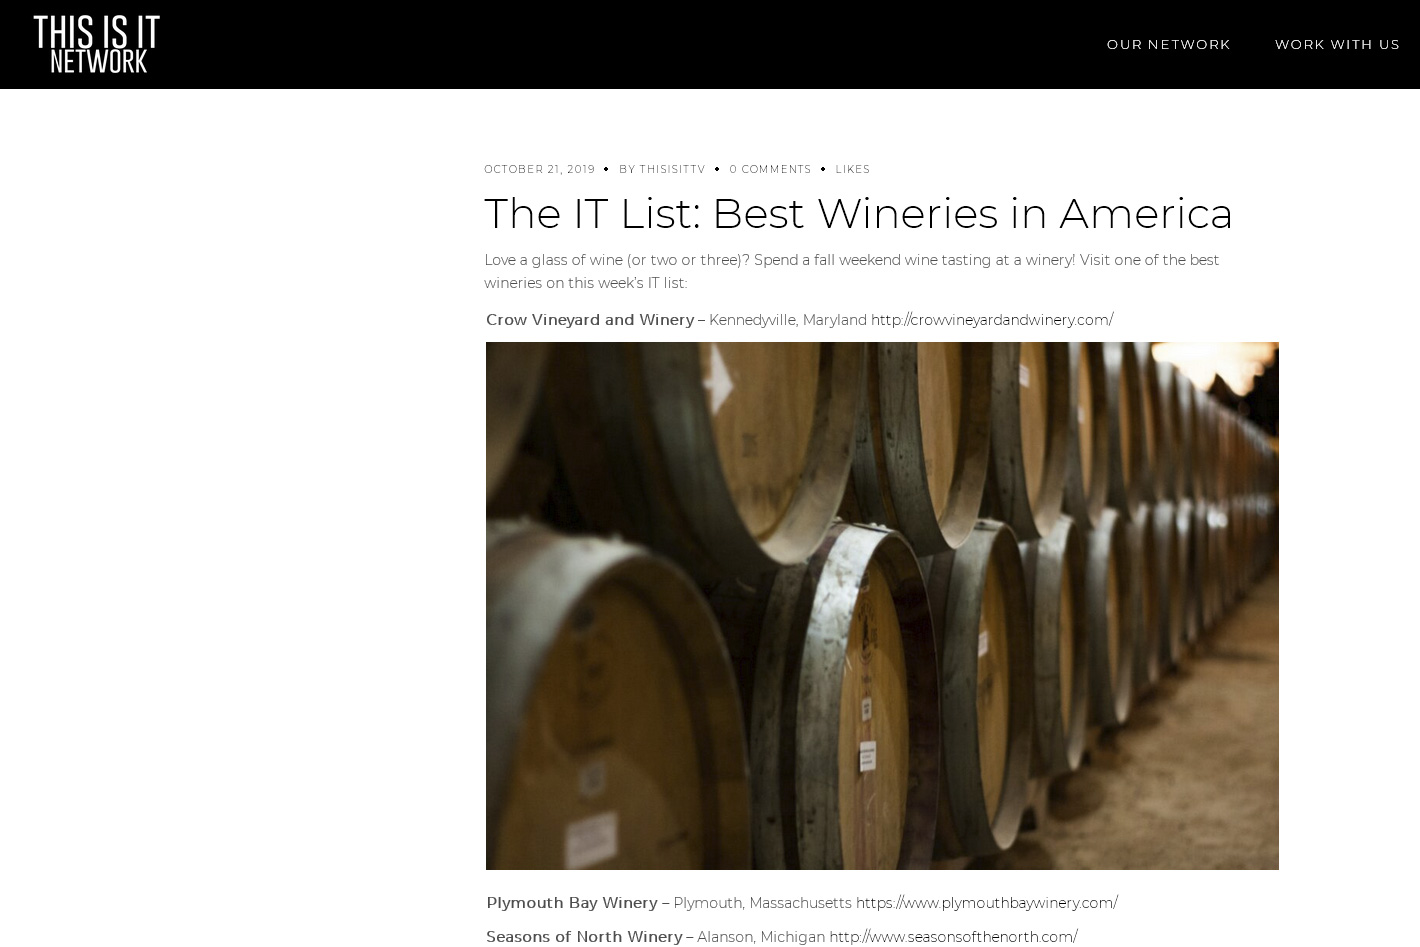 The IT List: Best Wineries in America